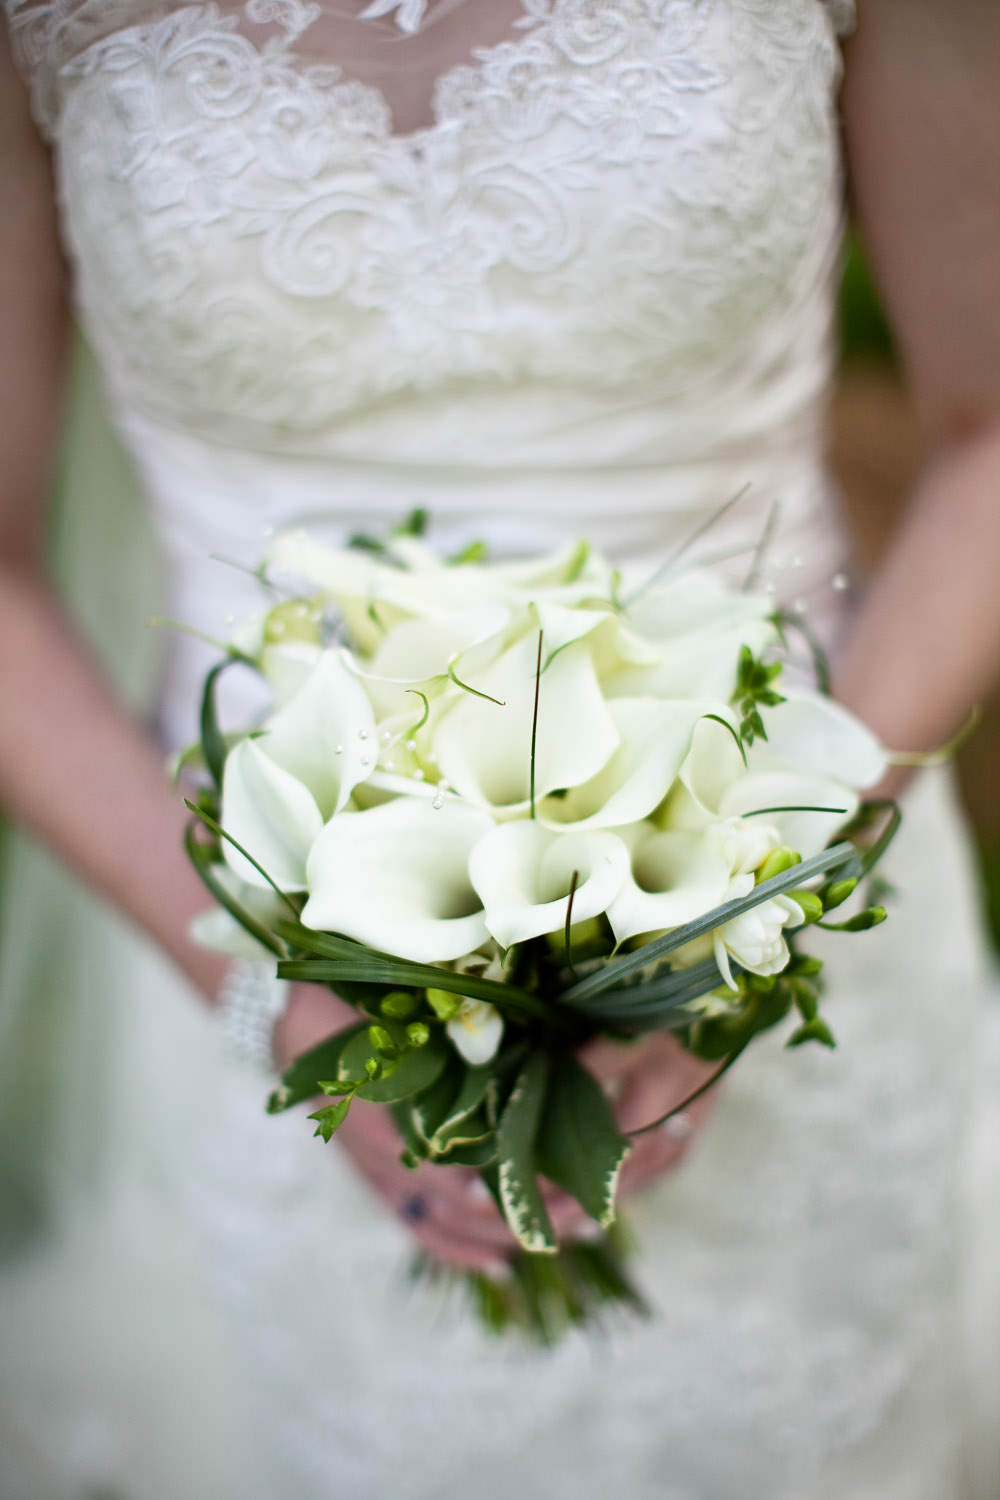 Bridal flowers at a Haslington Hall wedding